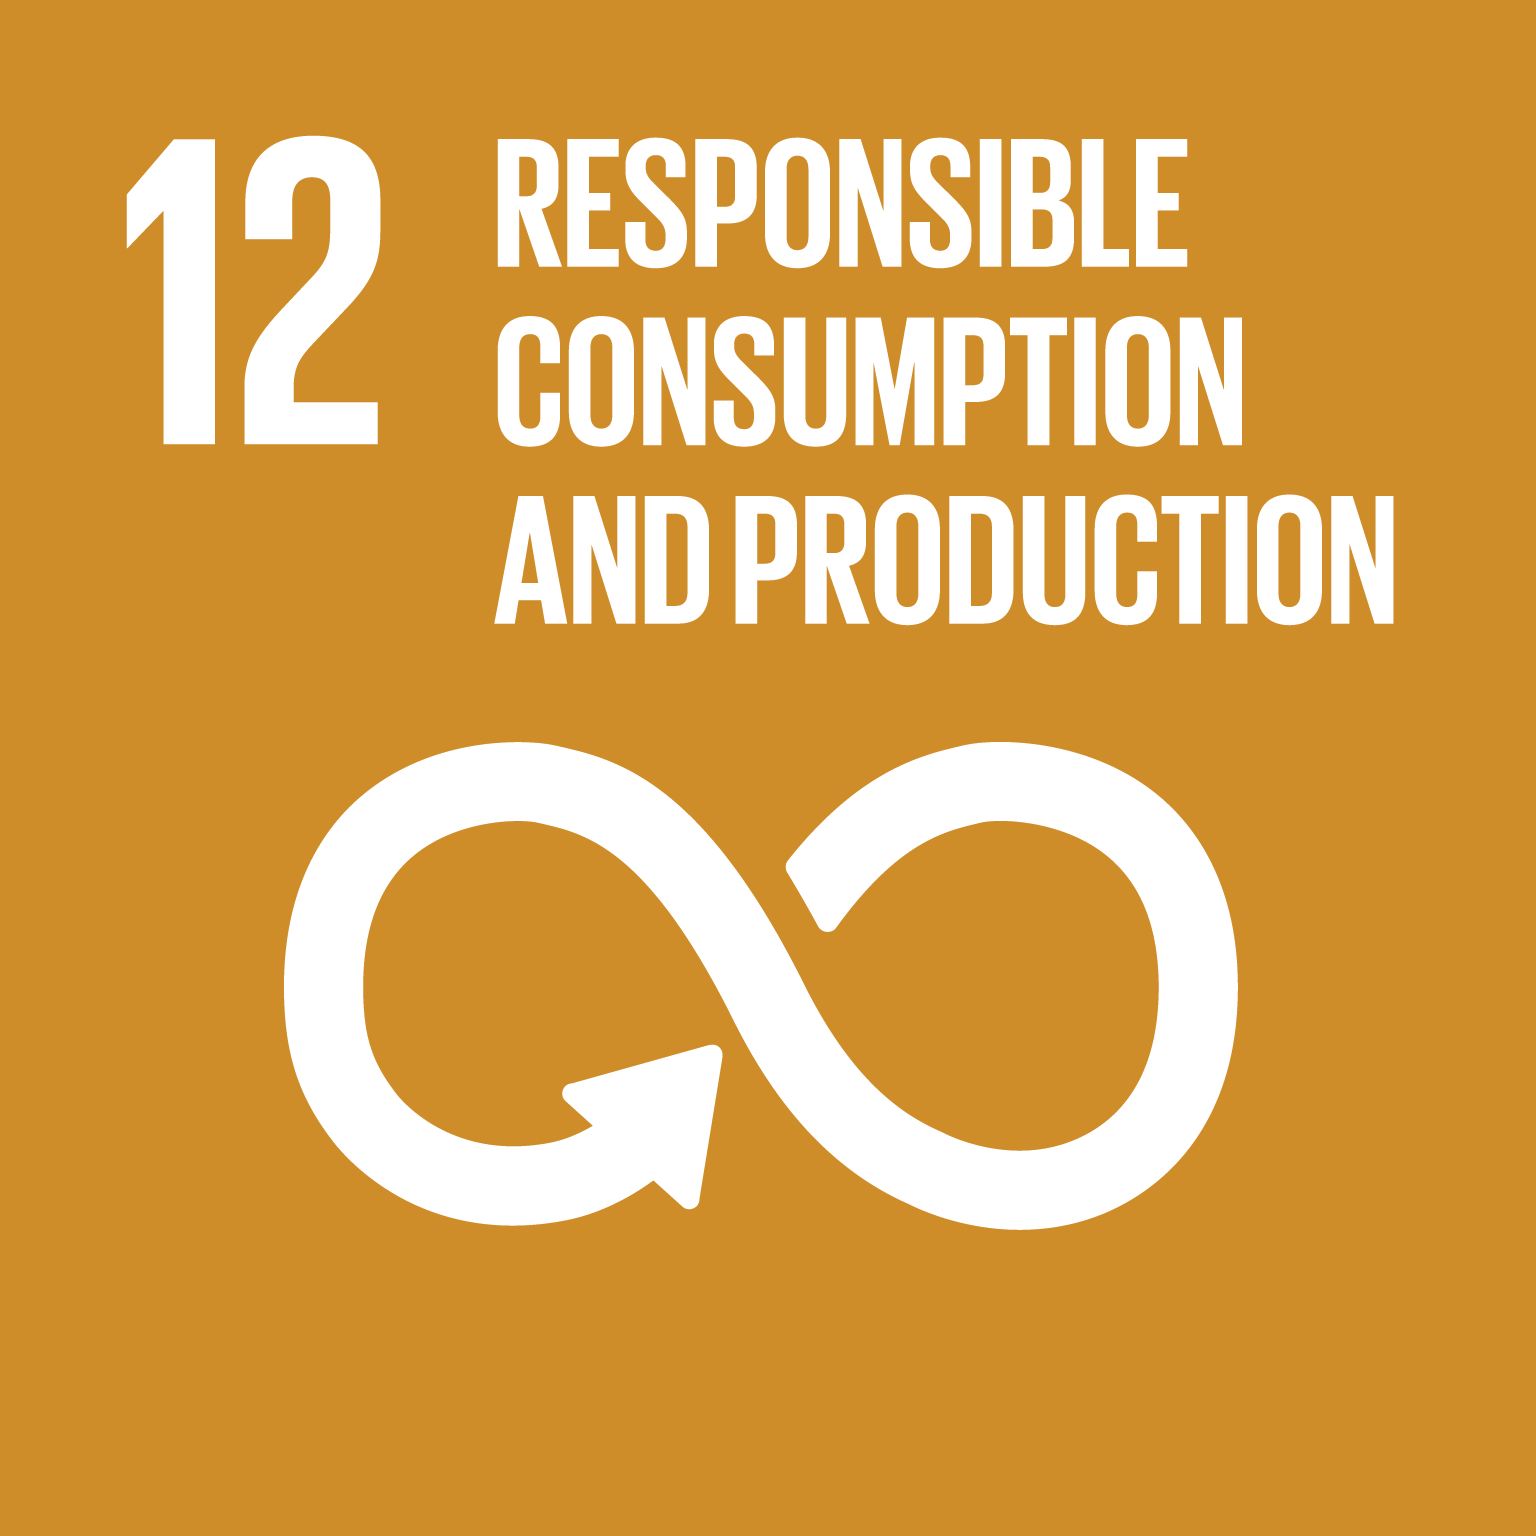 Responsible consumption and production logo.